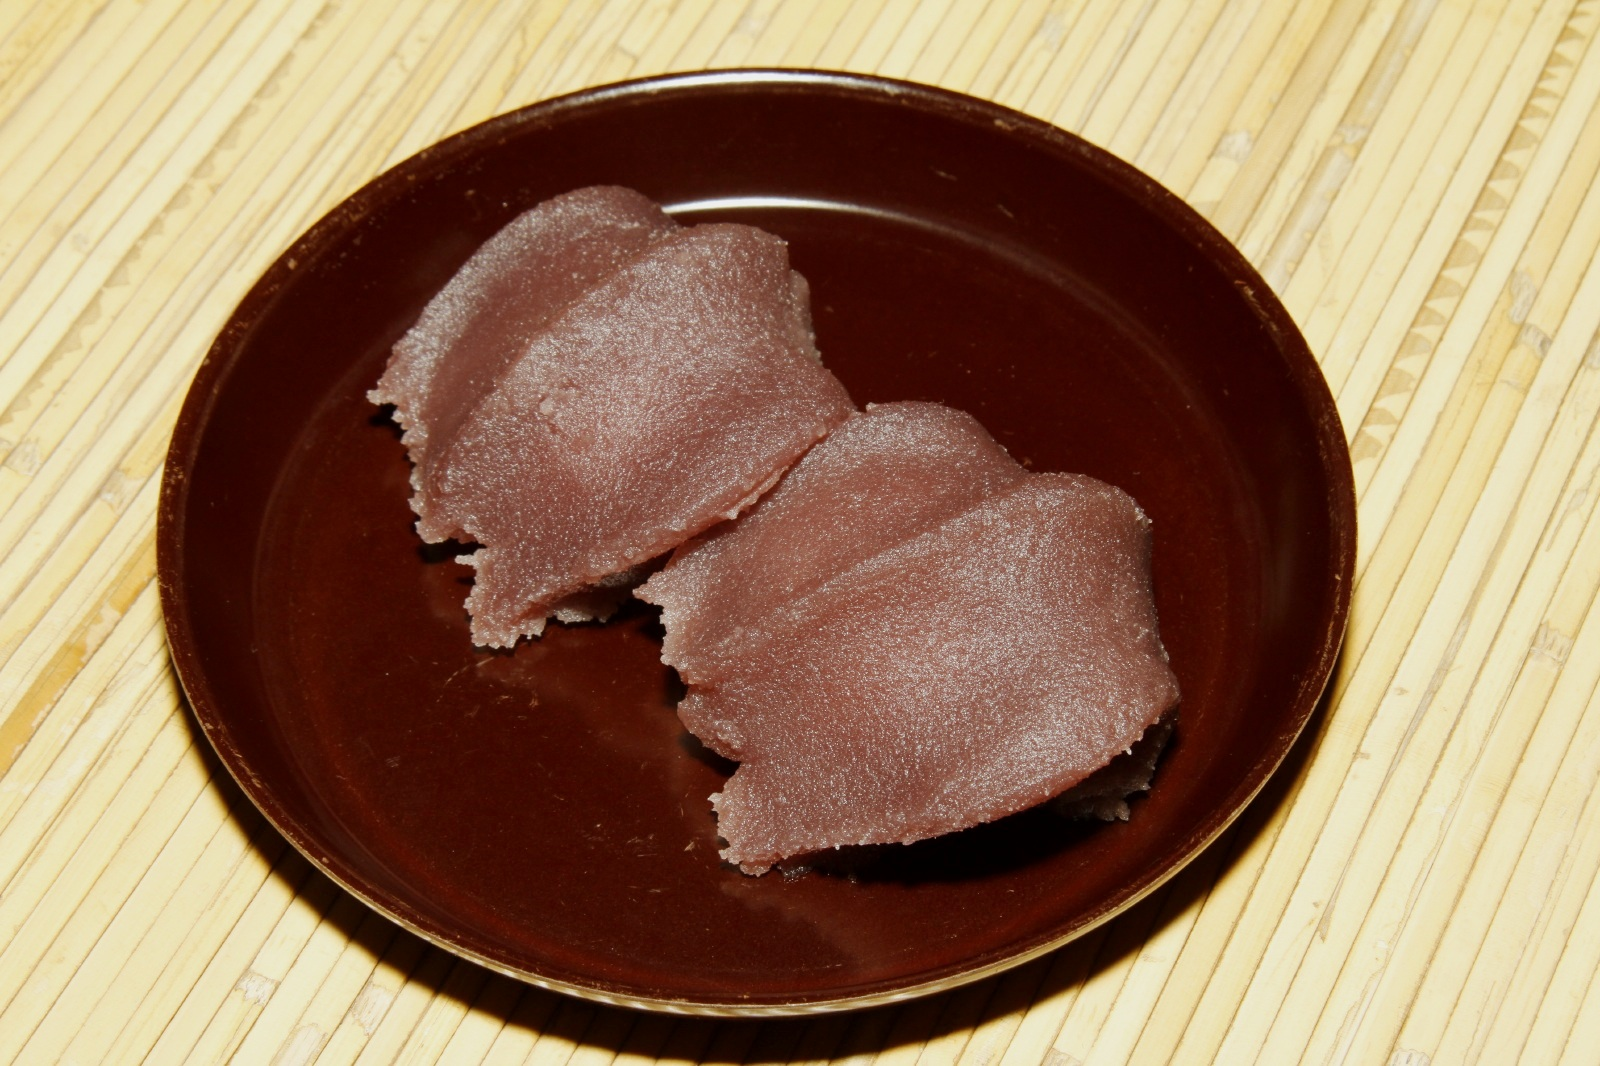 The taste of Mie, Akafuku Mochi